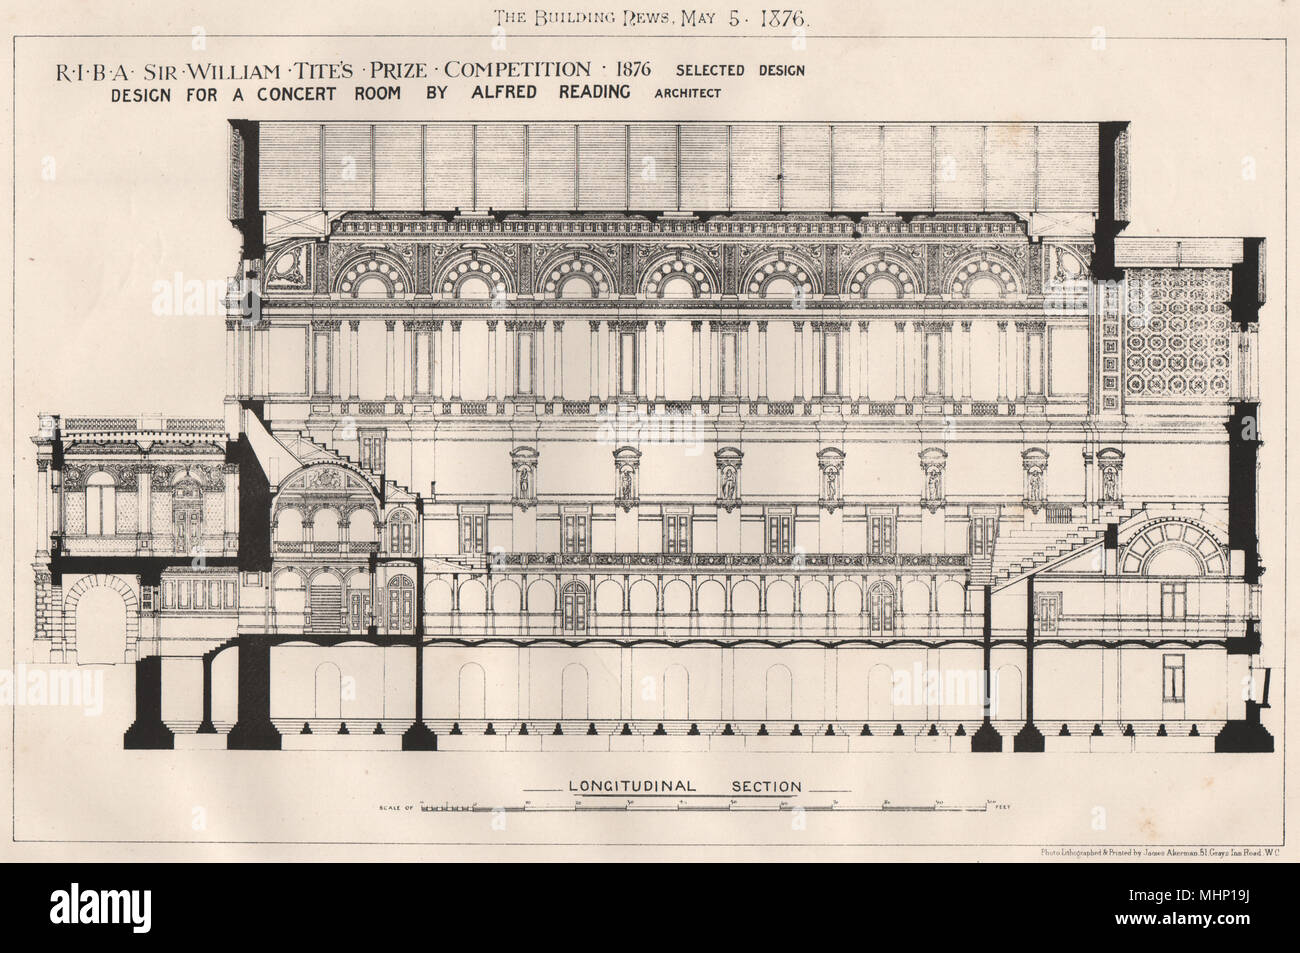 Design for a concert room by Alfred Reading, Architect (2) 1876 old print - Stock Image